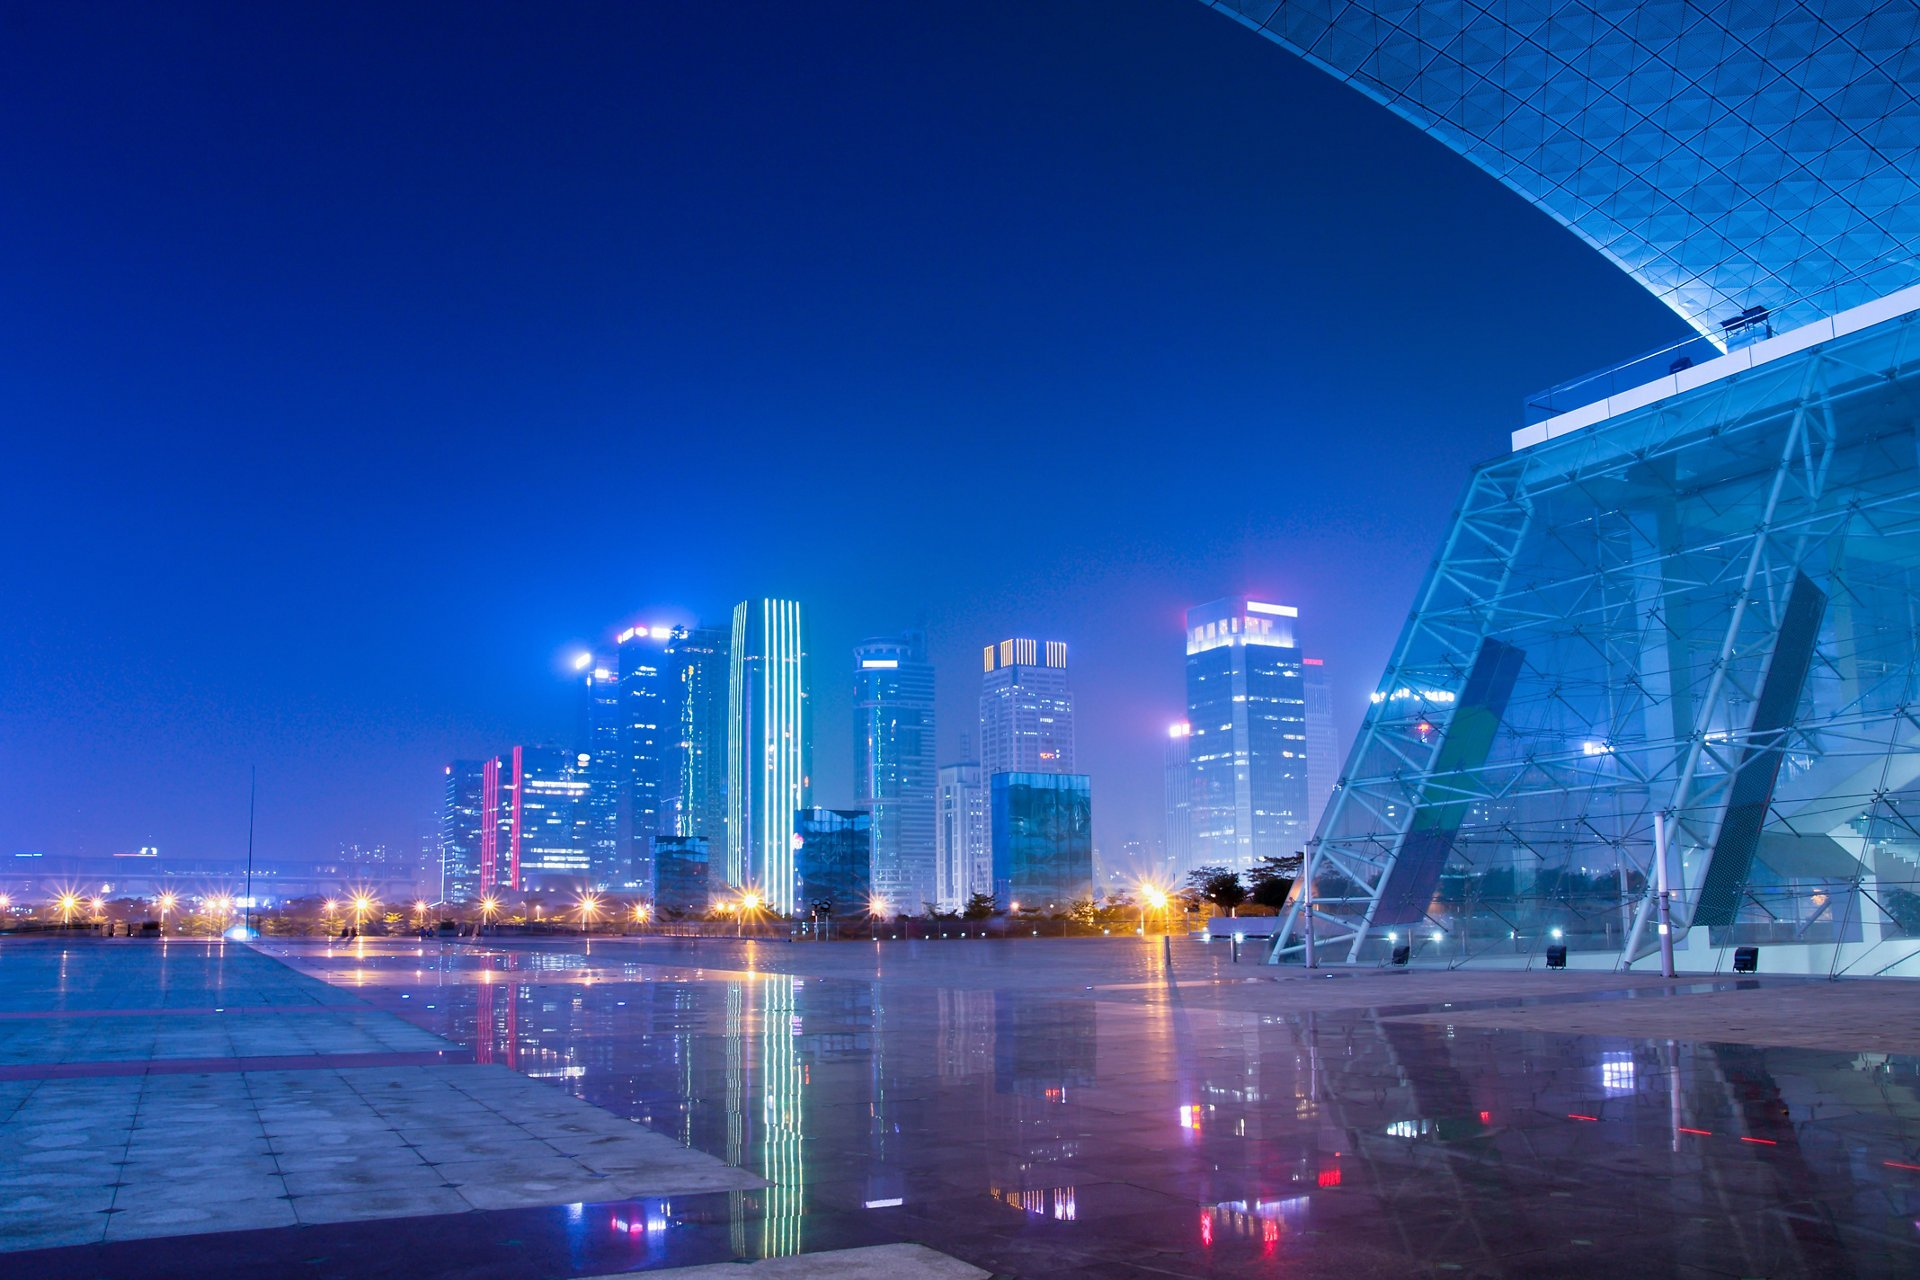 night scenes of shenzhen special economic zone,China